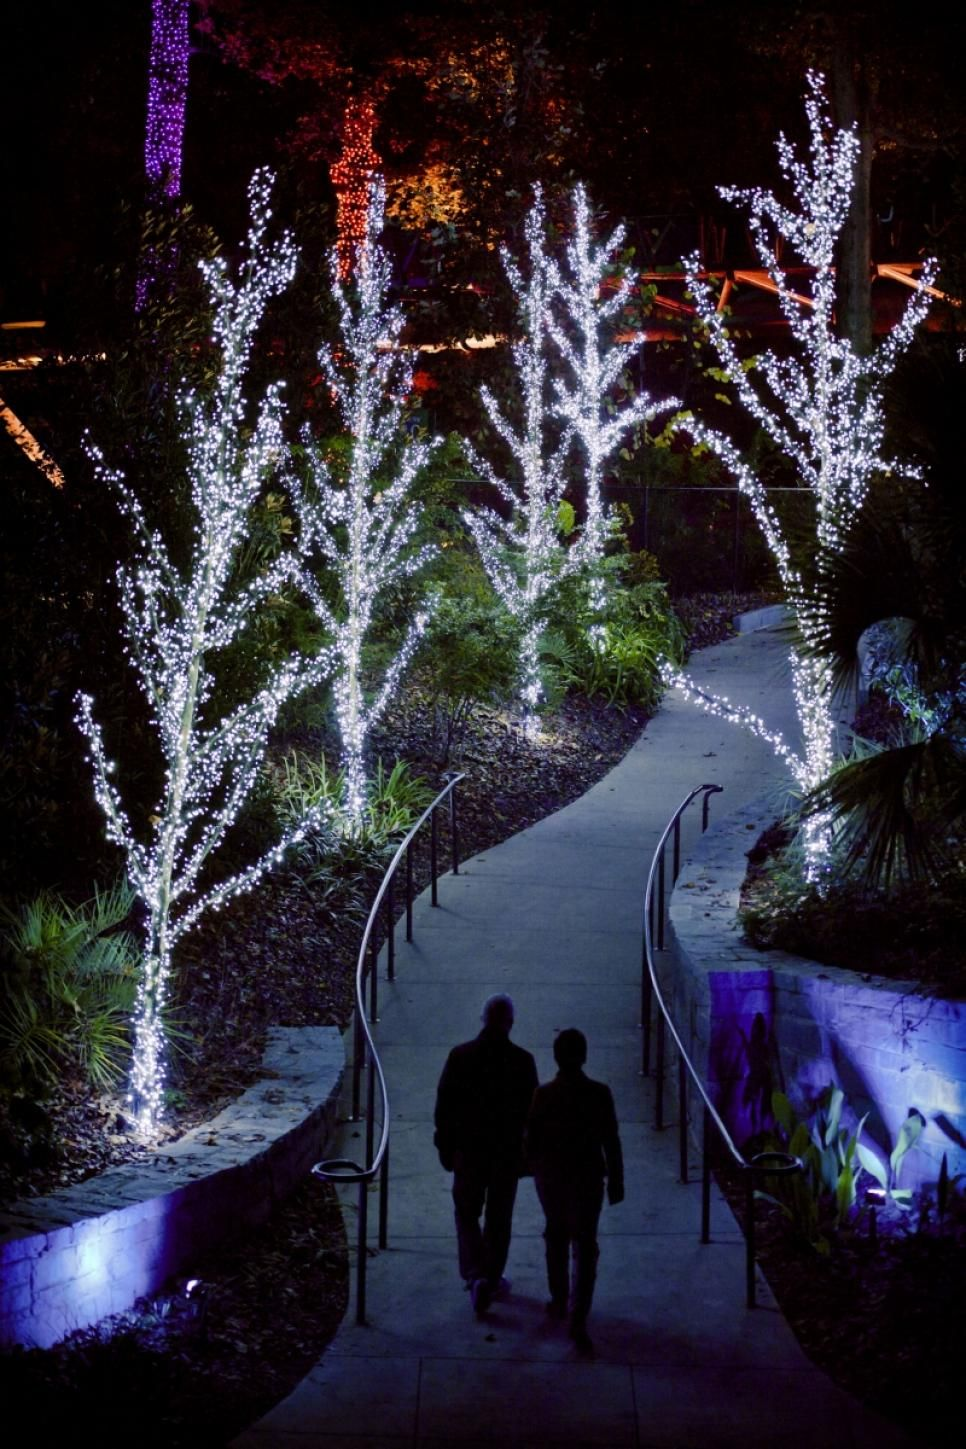 Holiday Light Shows at Botanical Gardens (With images